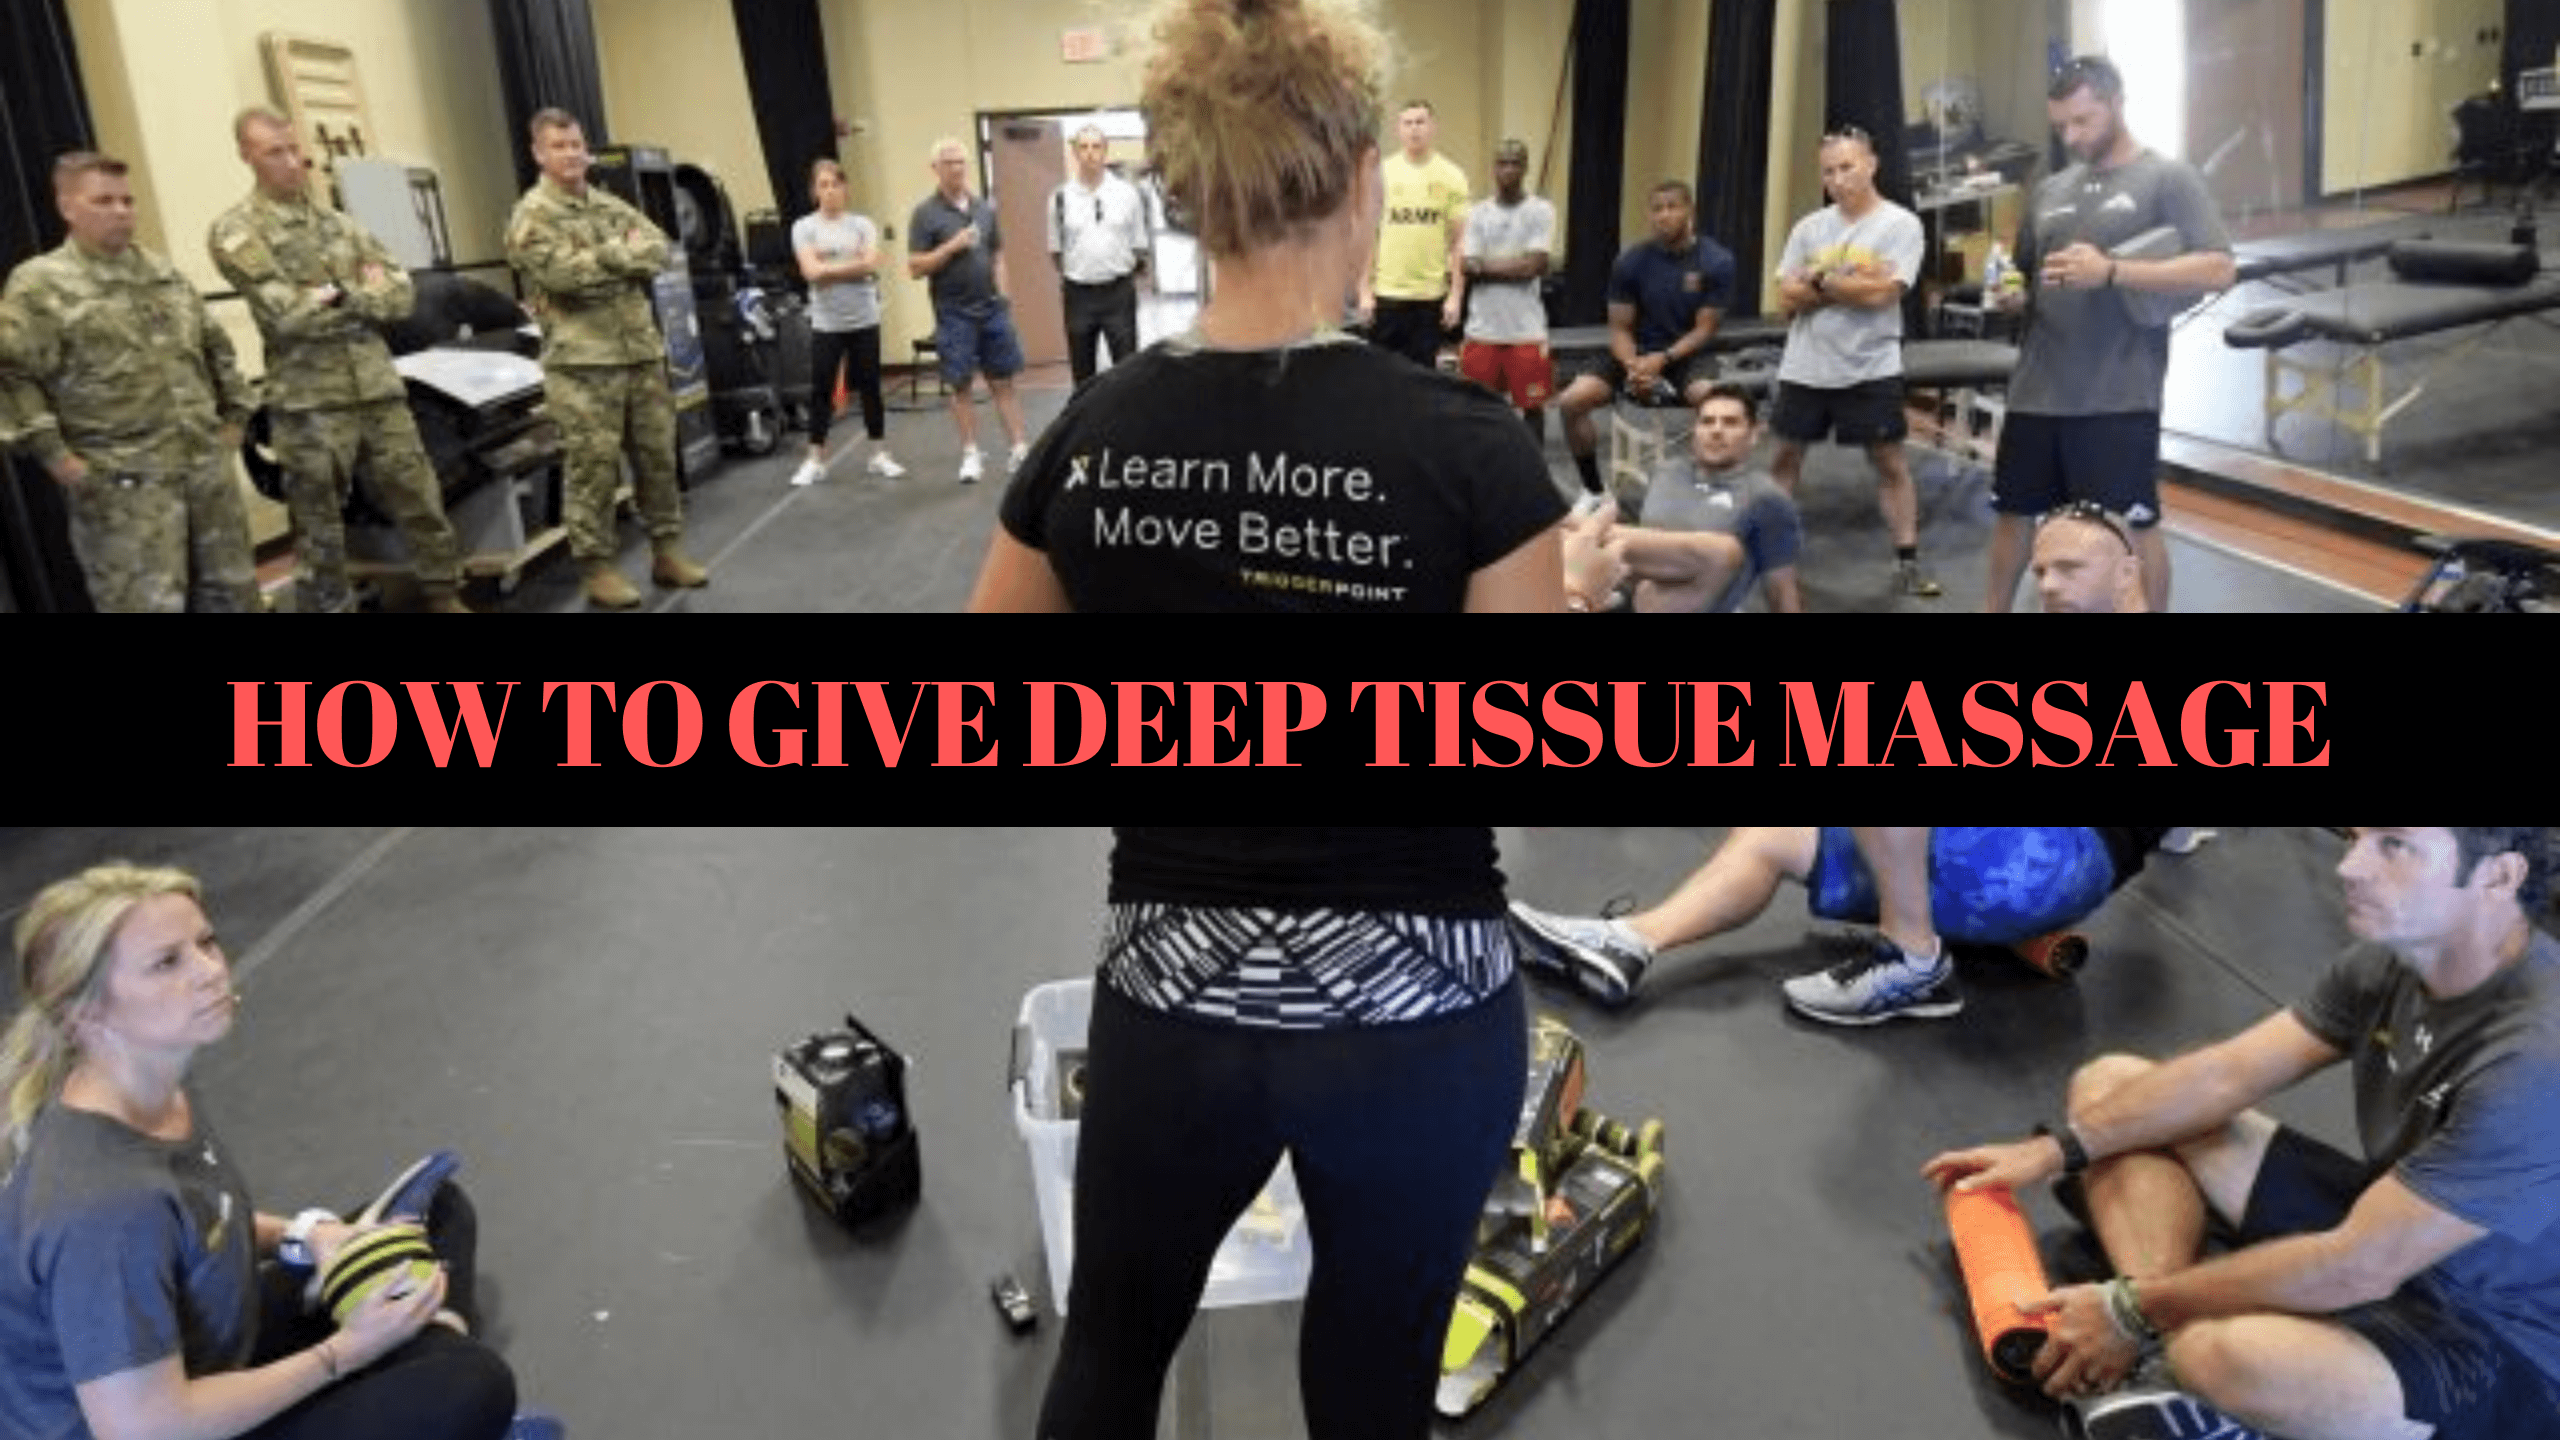 How to Give Deep Tissue Massage